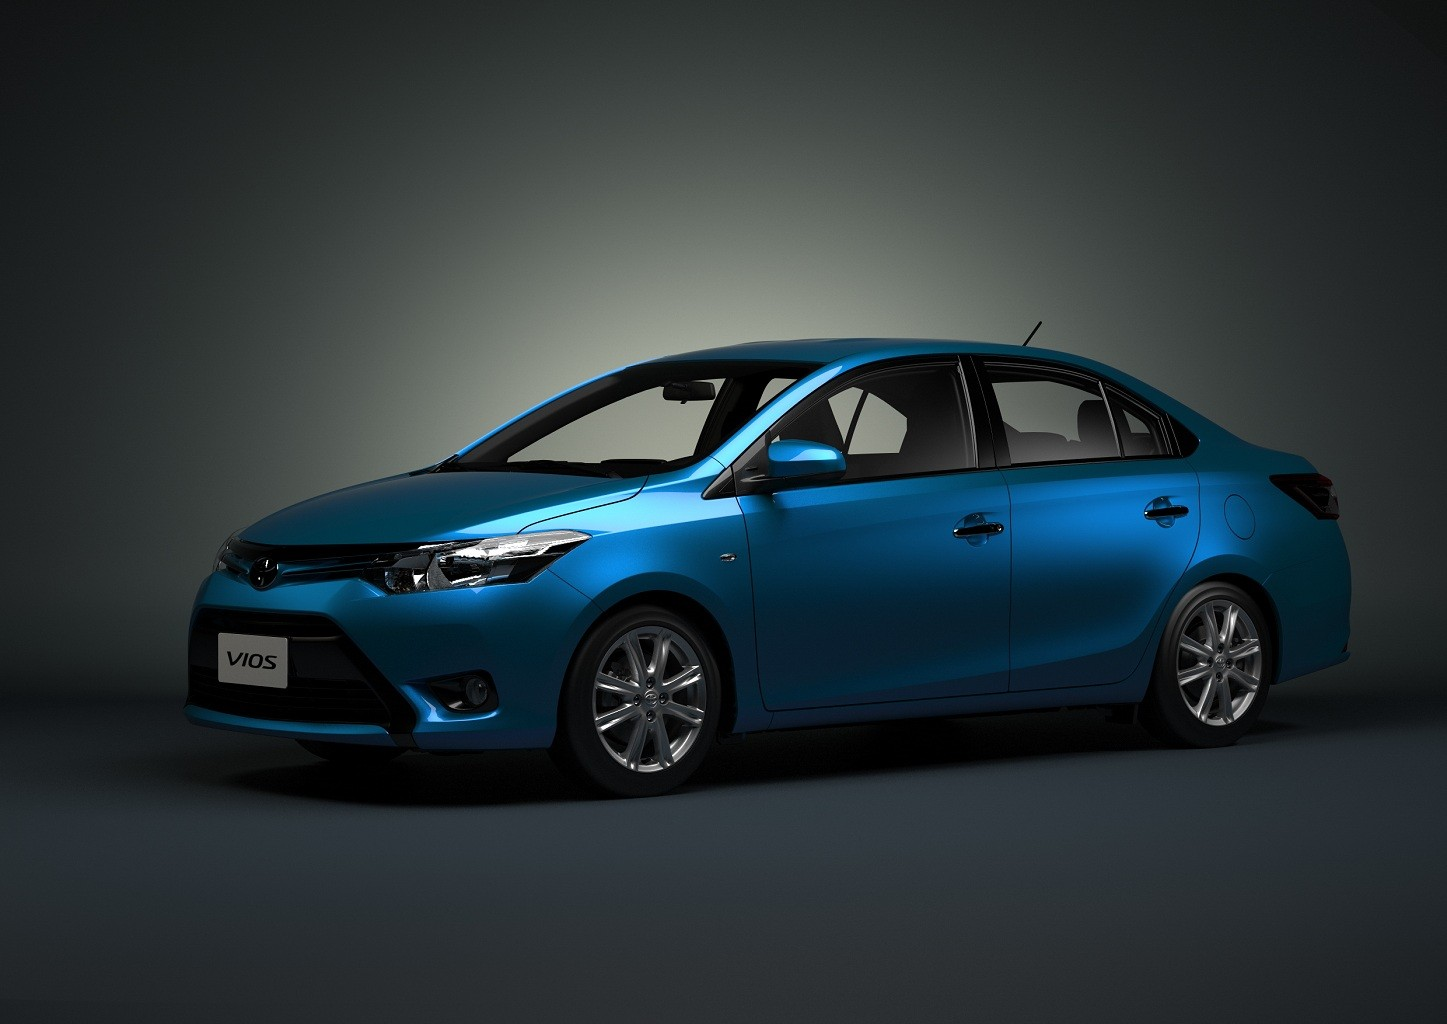 Common Toyota Vios Problems and How to Fix Them